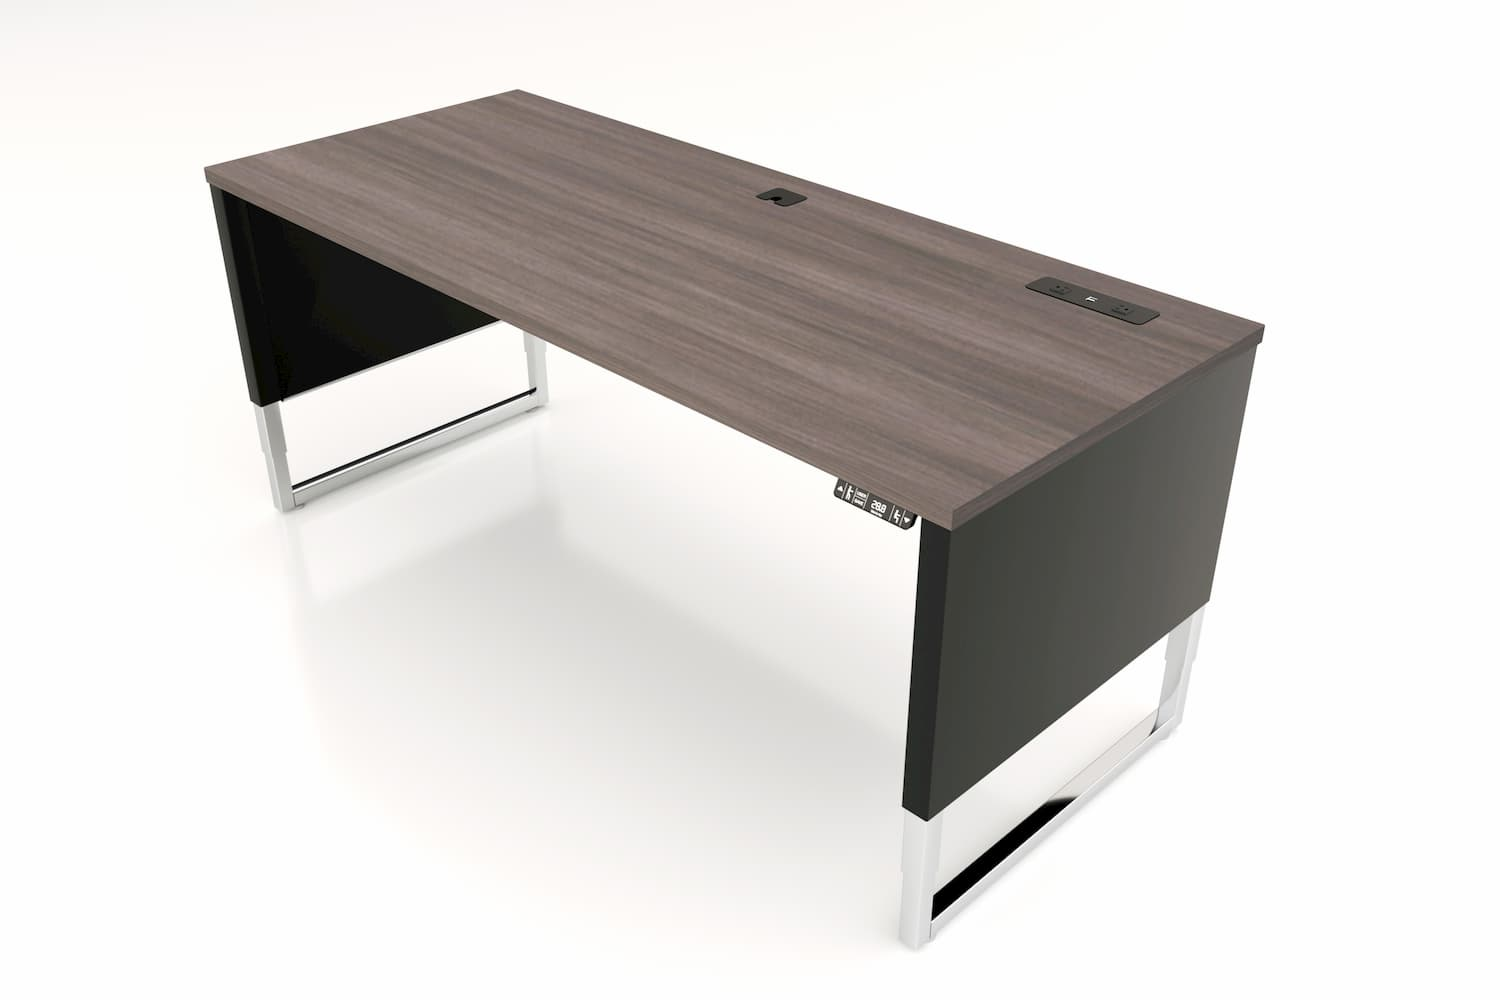 Advent-Desk-ADV-7230-BK-Custom-Top-12